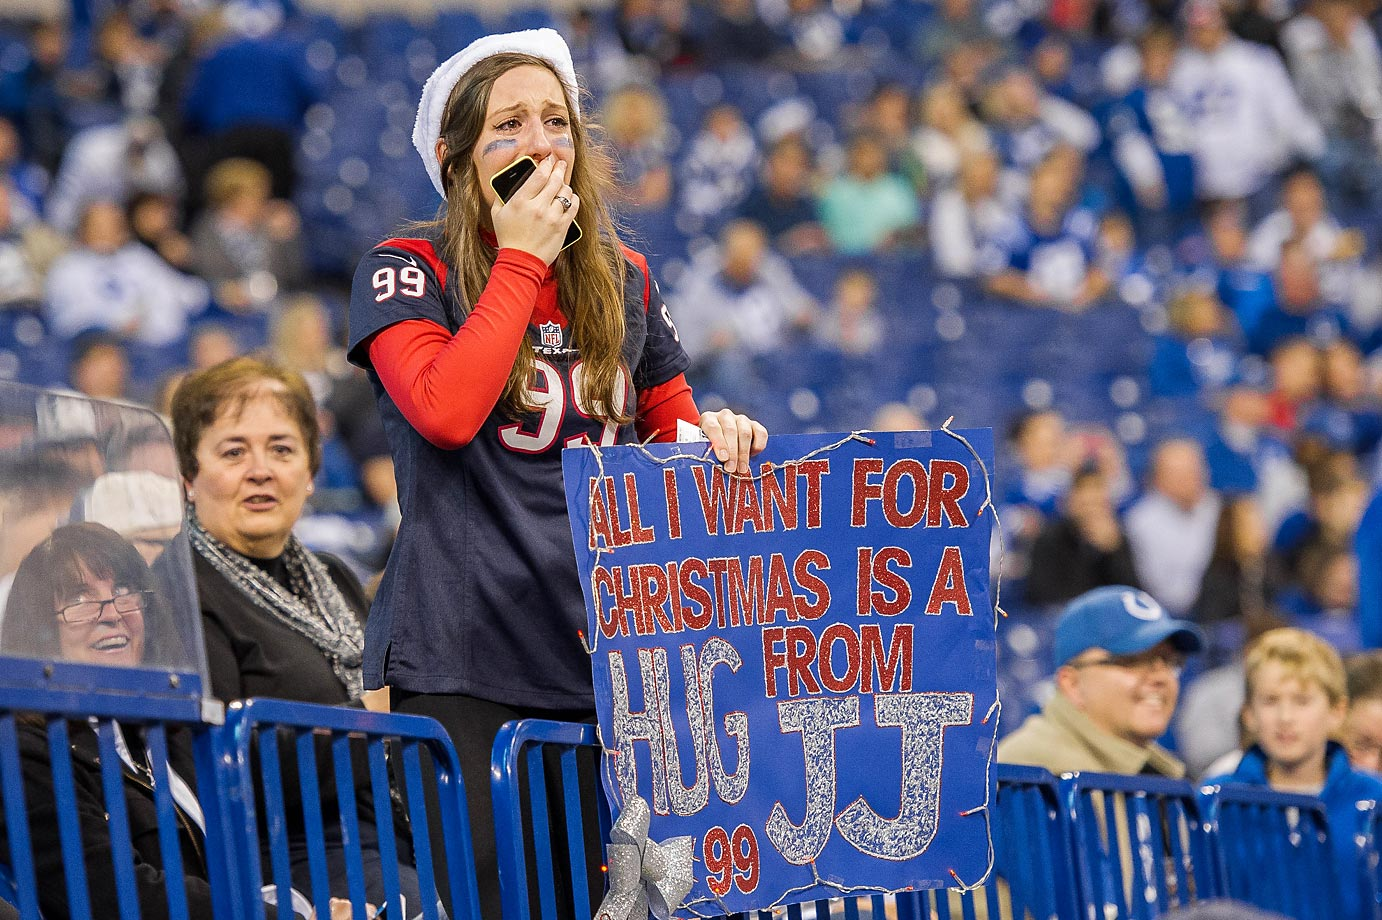 A Texans fan reacts after J.J. Watt granted her Christmas wish and gave her a hug before the game against the Indianapolis Colts.